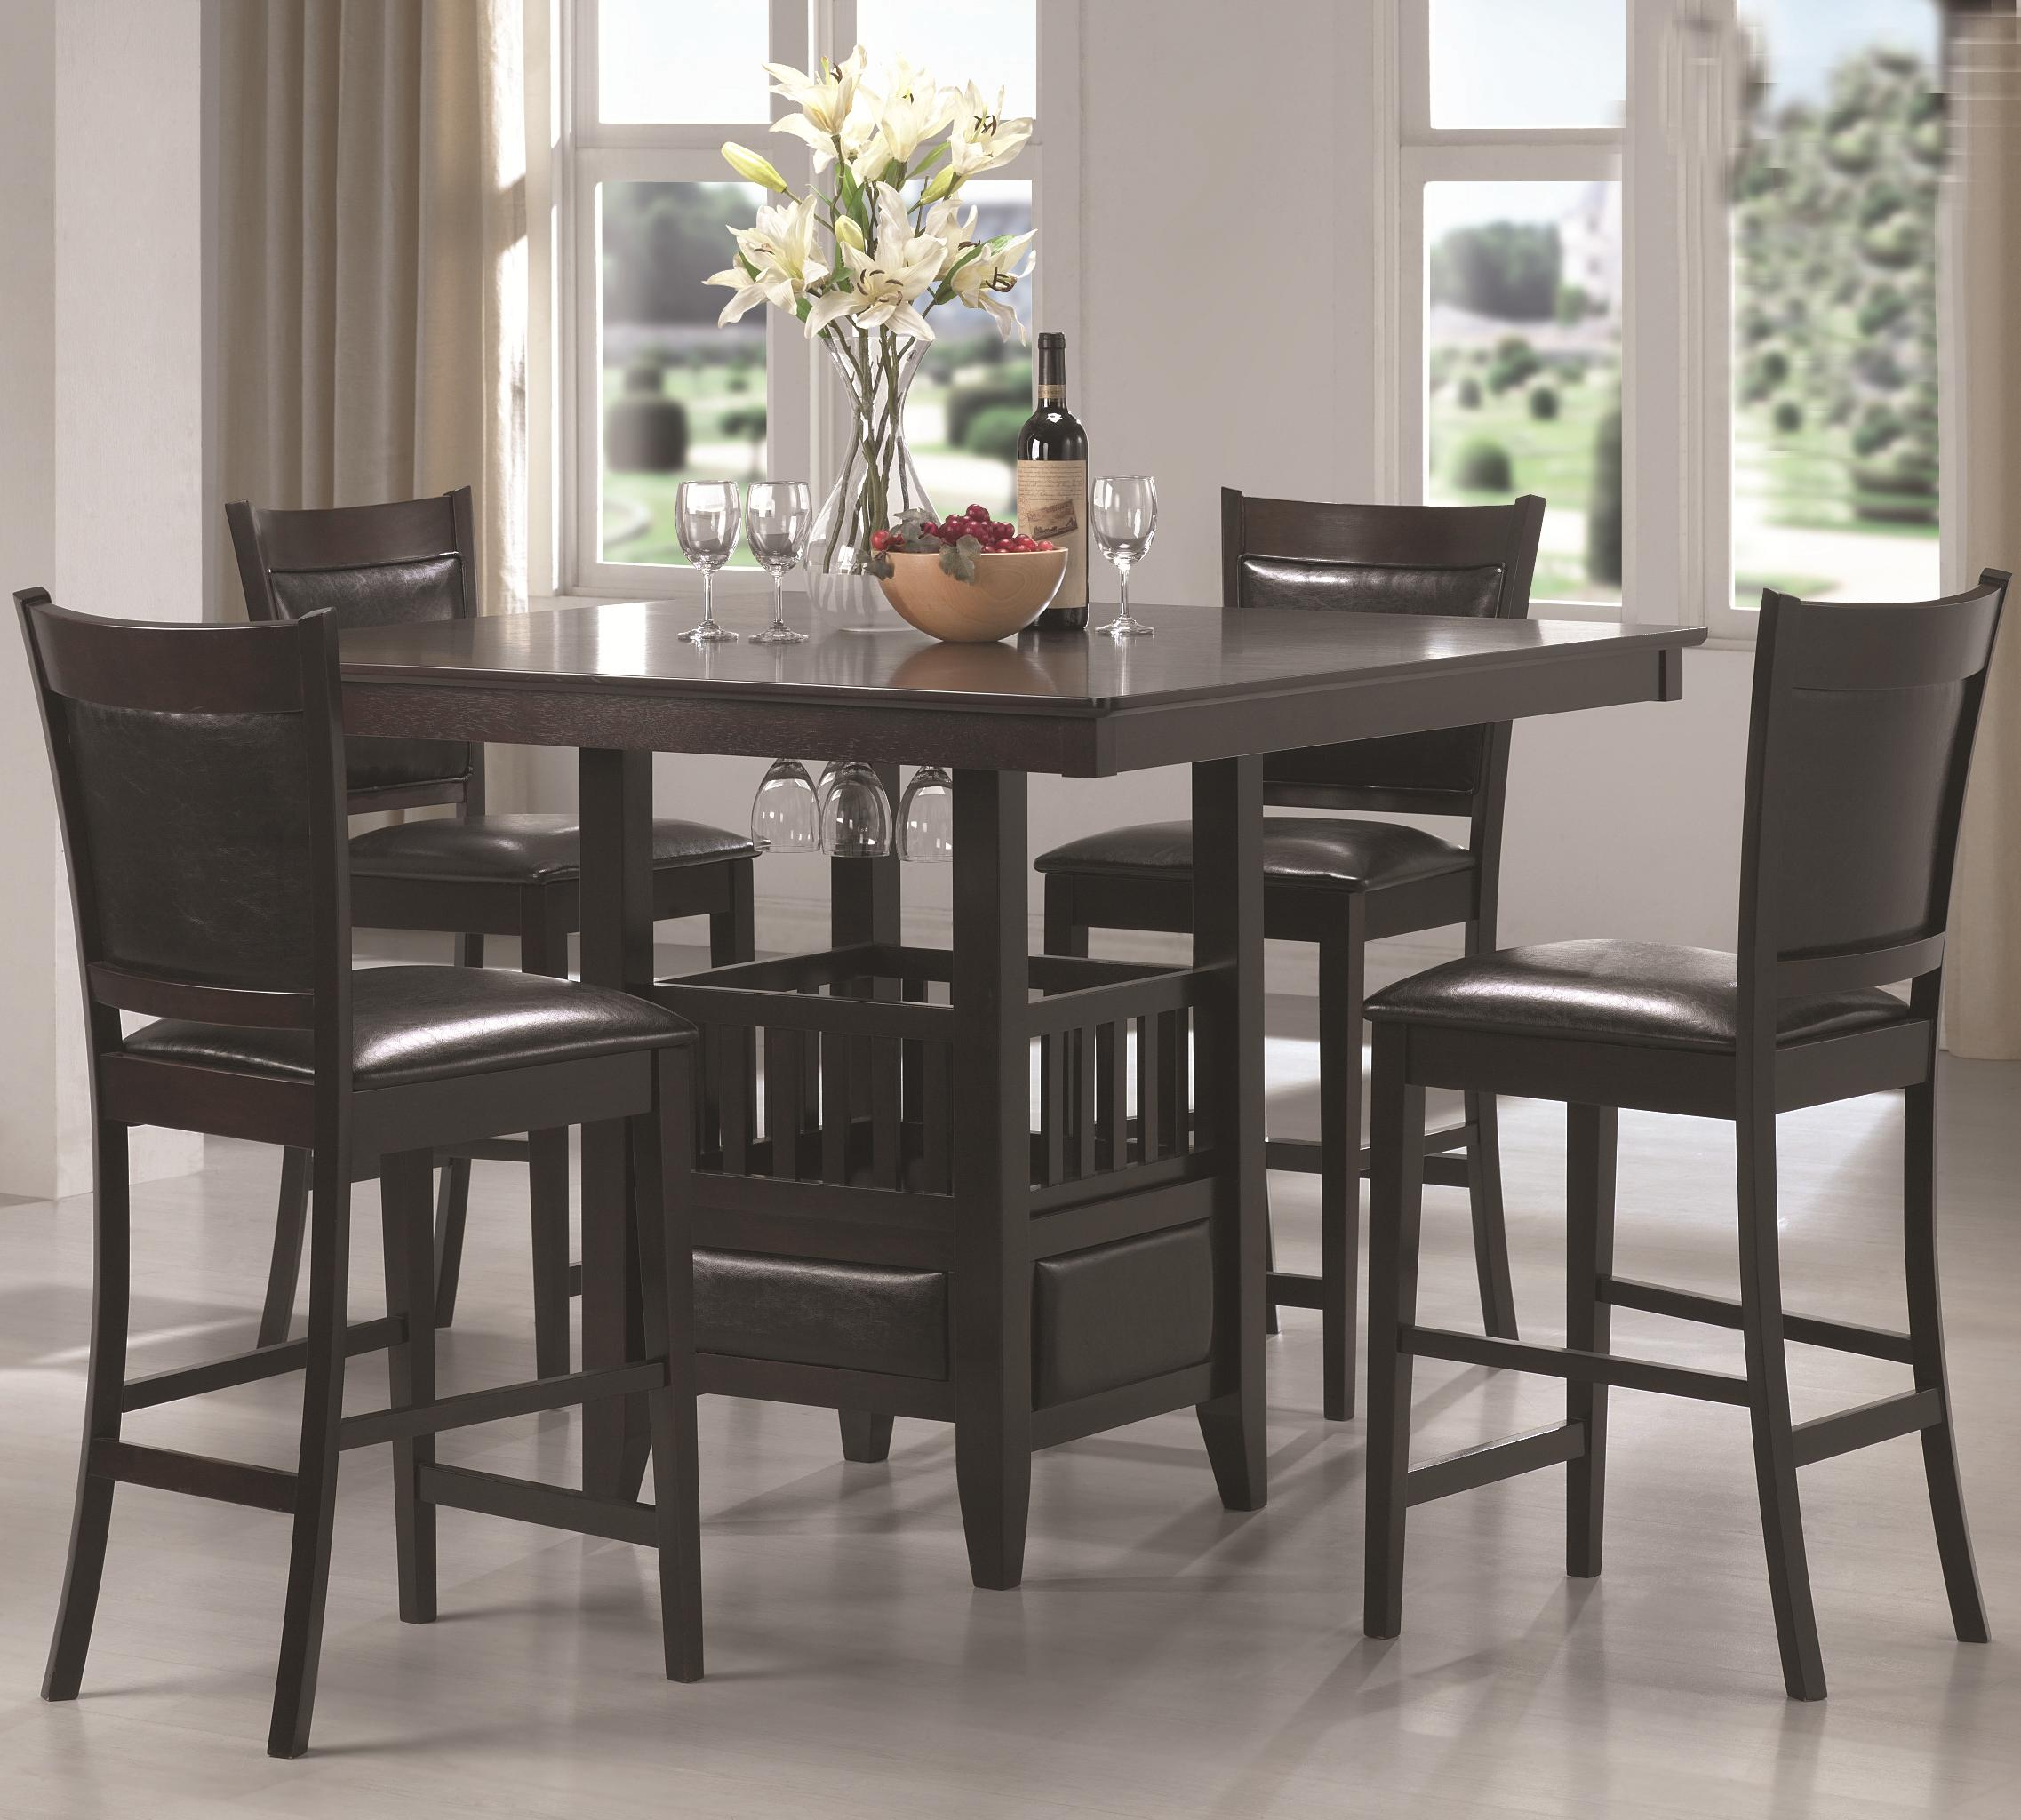 Cheap Pub Table And Chairs: Page Title